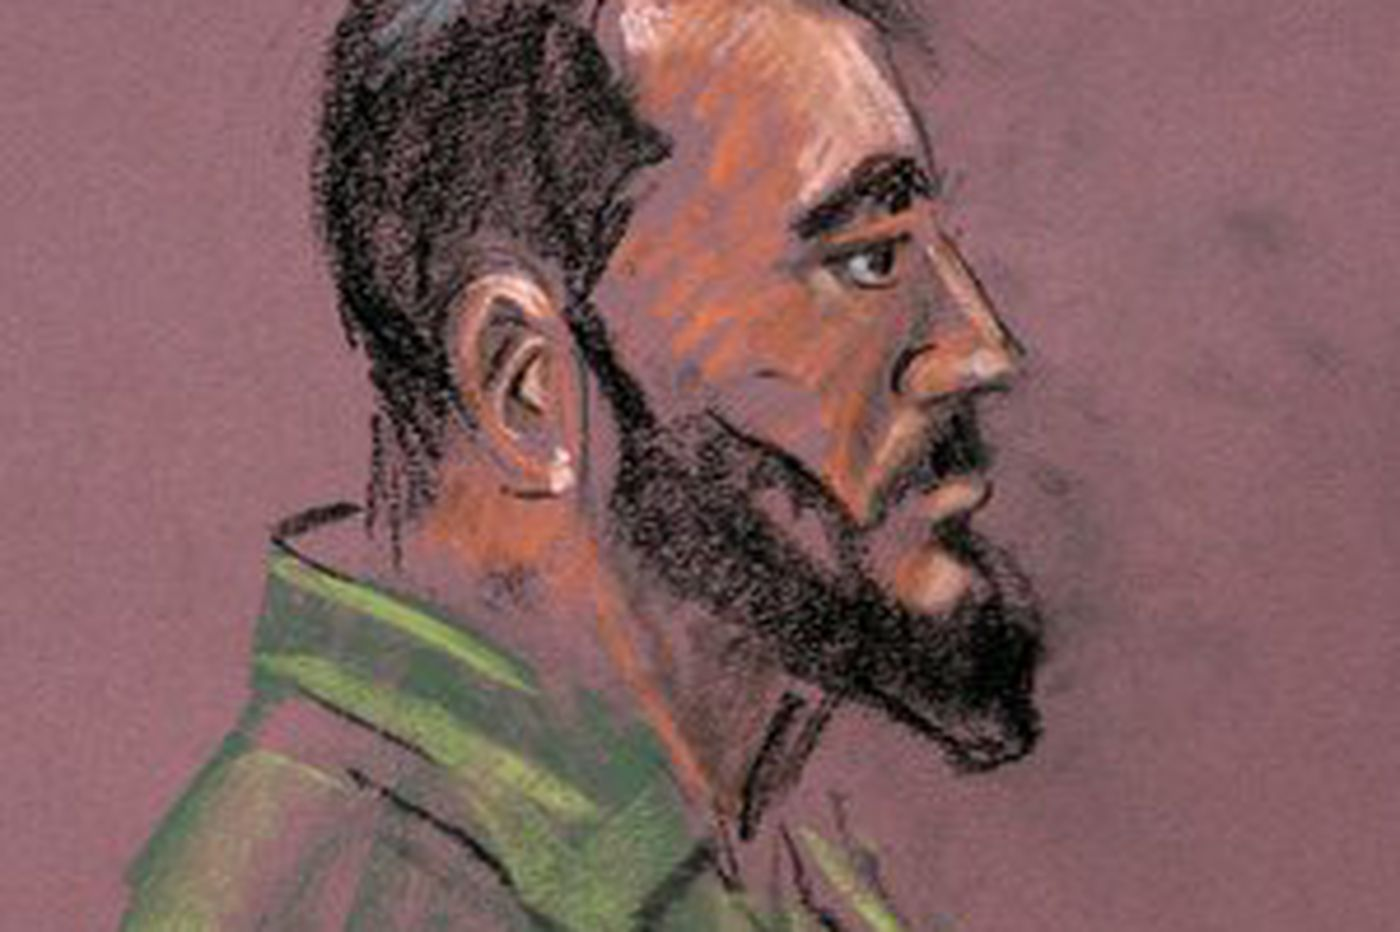 Fort Dix case lawyers spar over 'jihad' DVD in prison